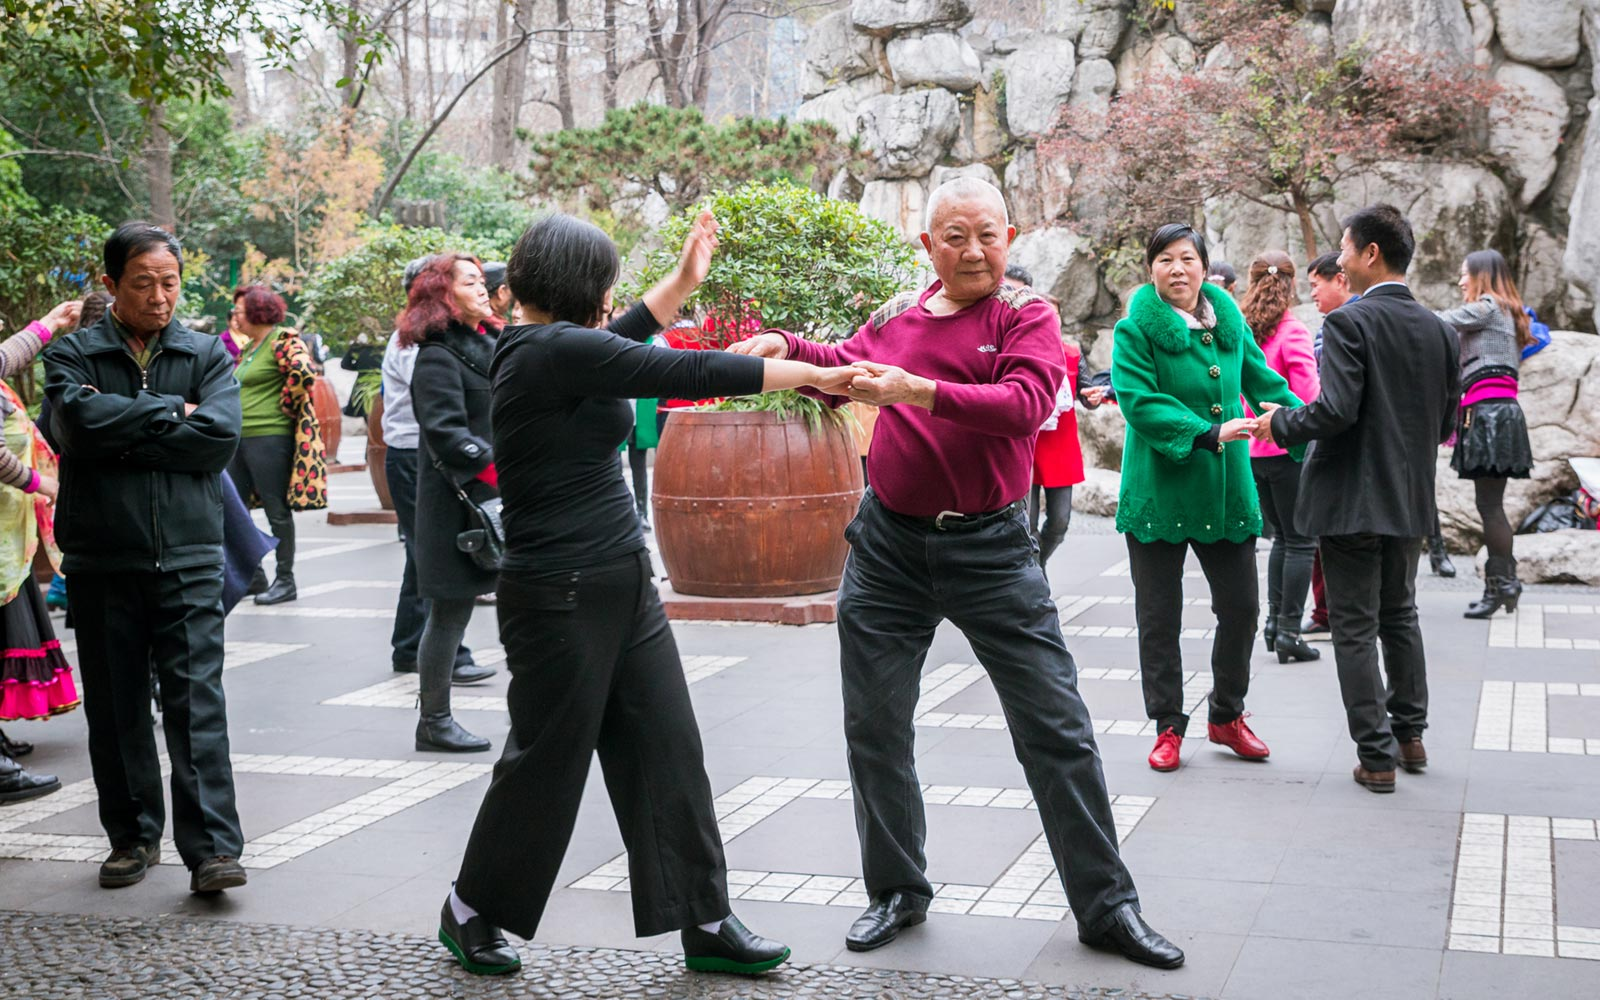 Dancing, People's Park, Chengdu, China